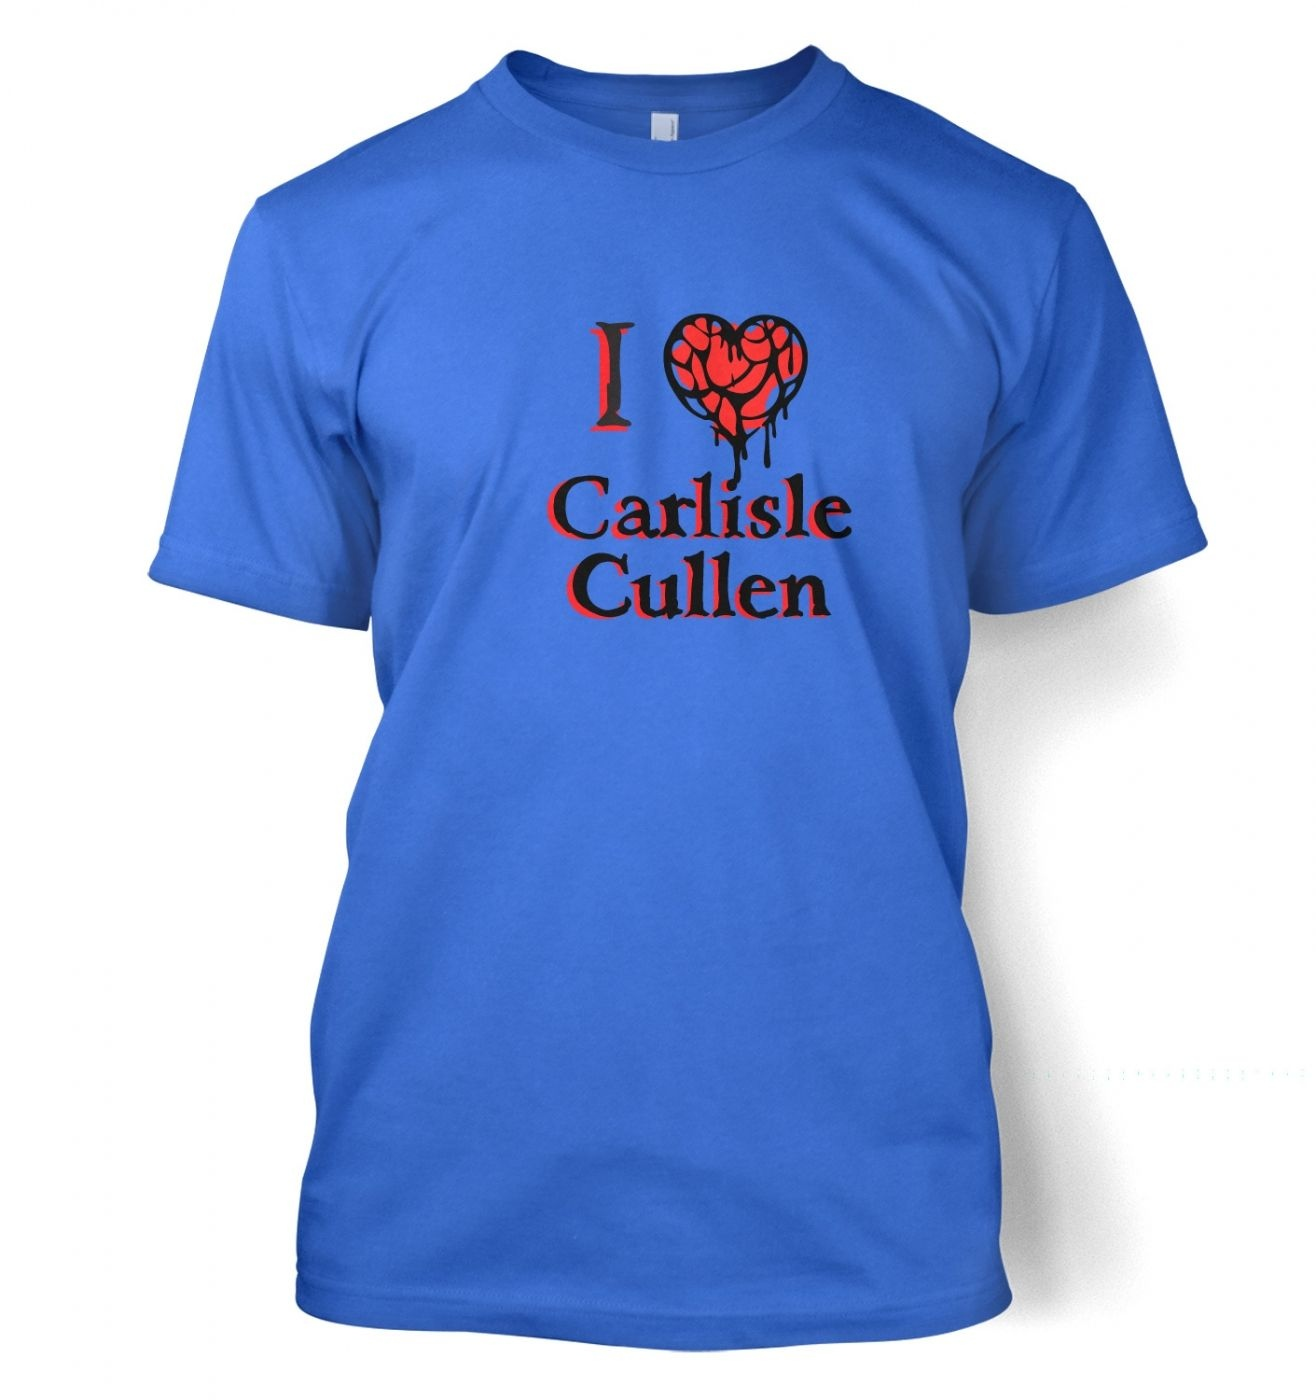 I Heart Carlisle Cullen men's t-shirt